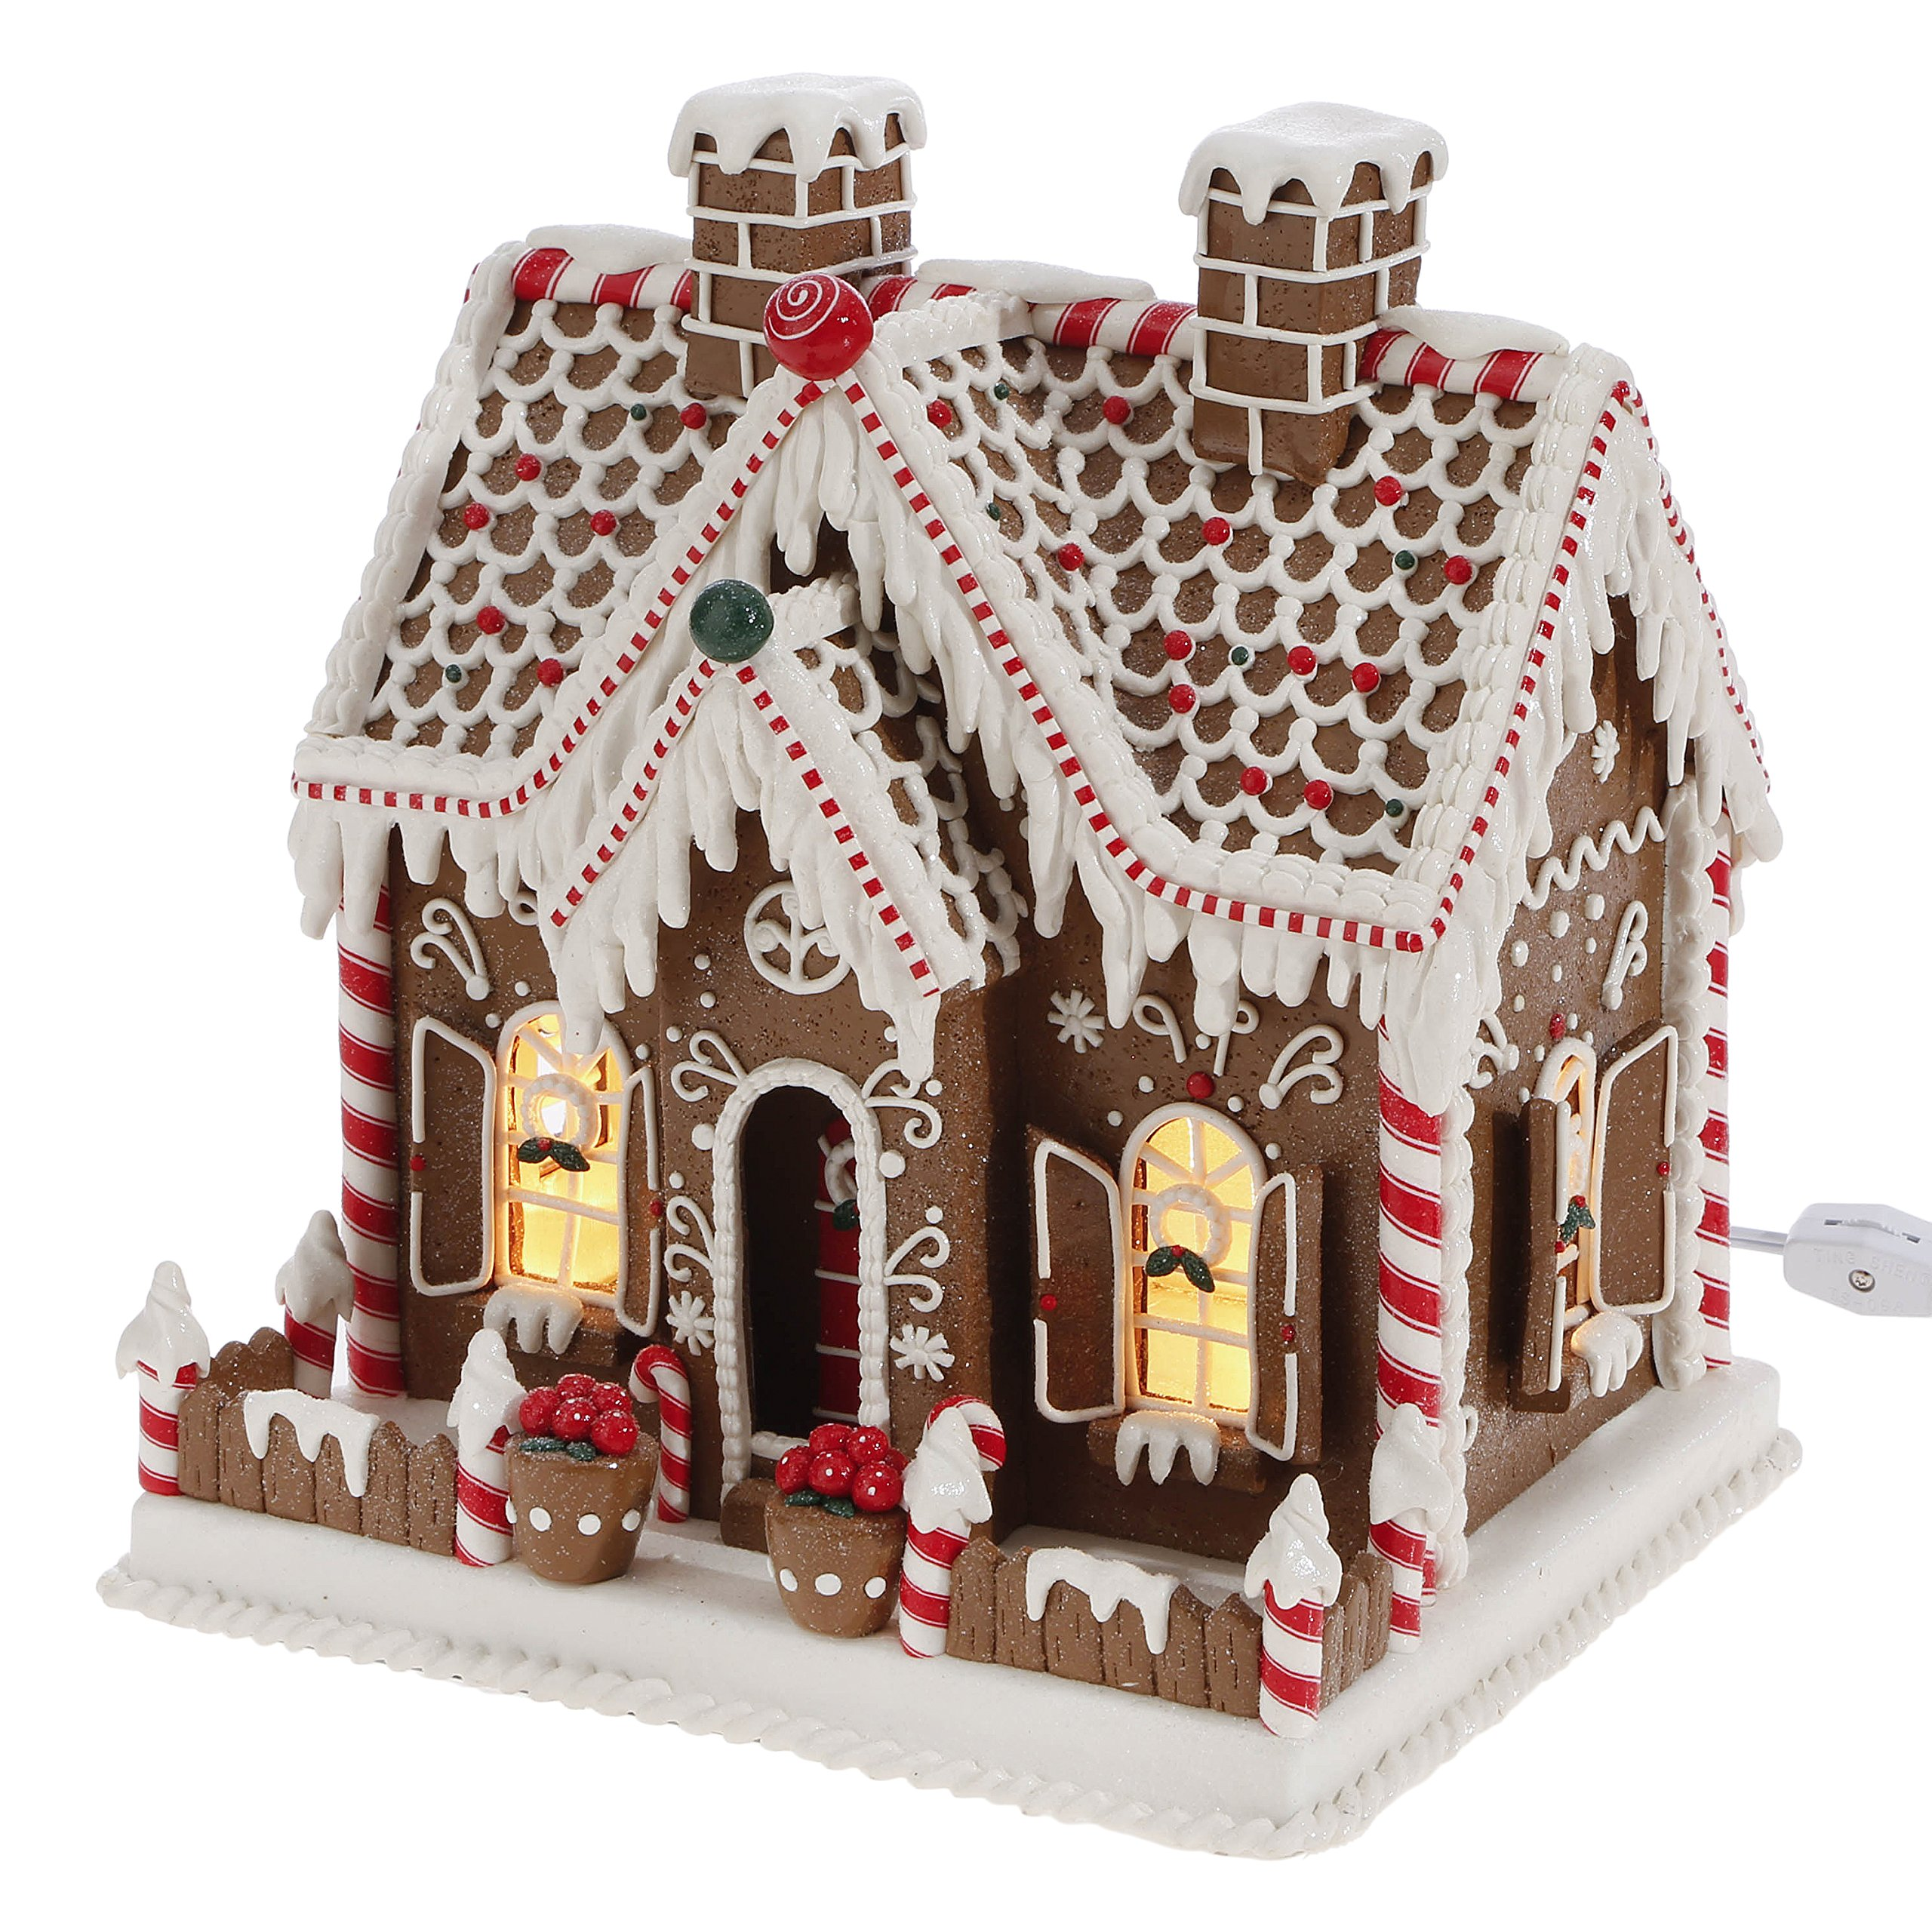 11 Inch Lighted Gingerbread House Holiday Decoration - Tabletop Christmas Decoration by One Christmas Lane